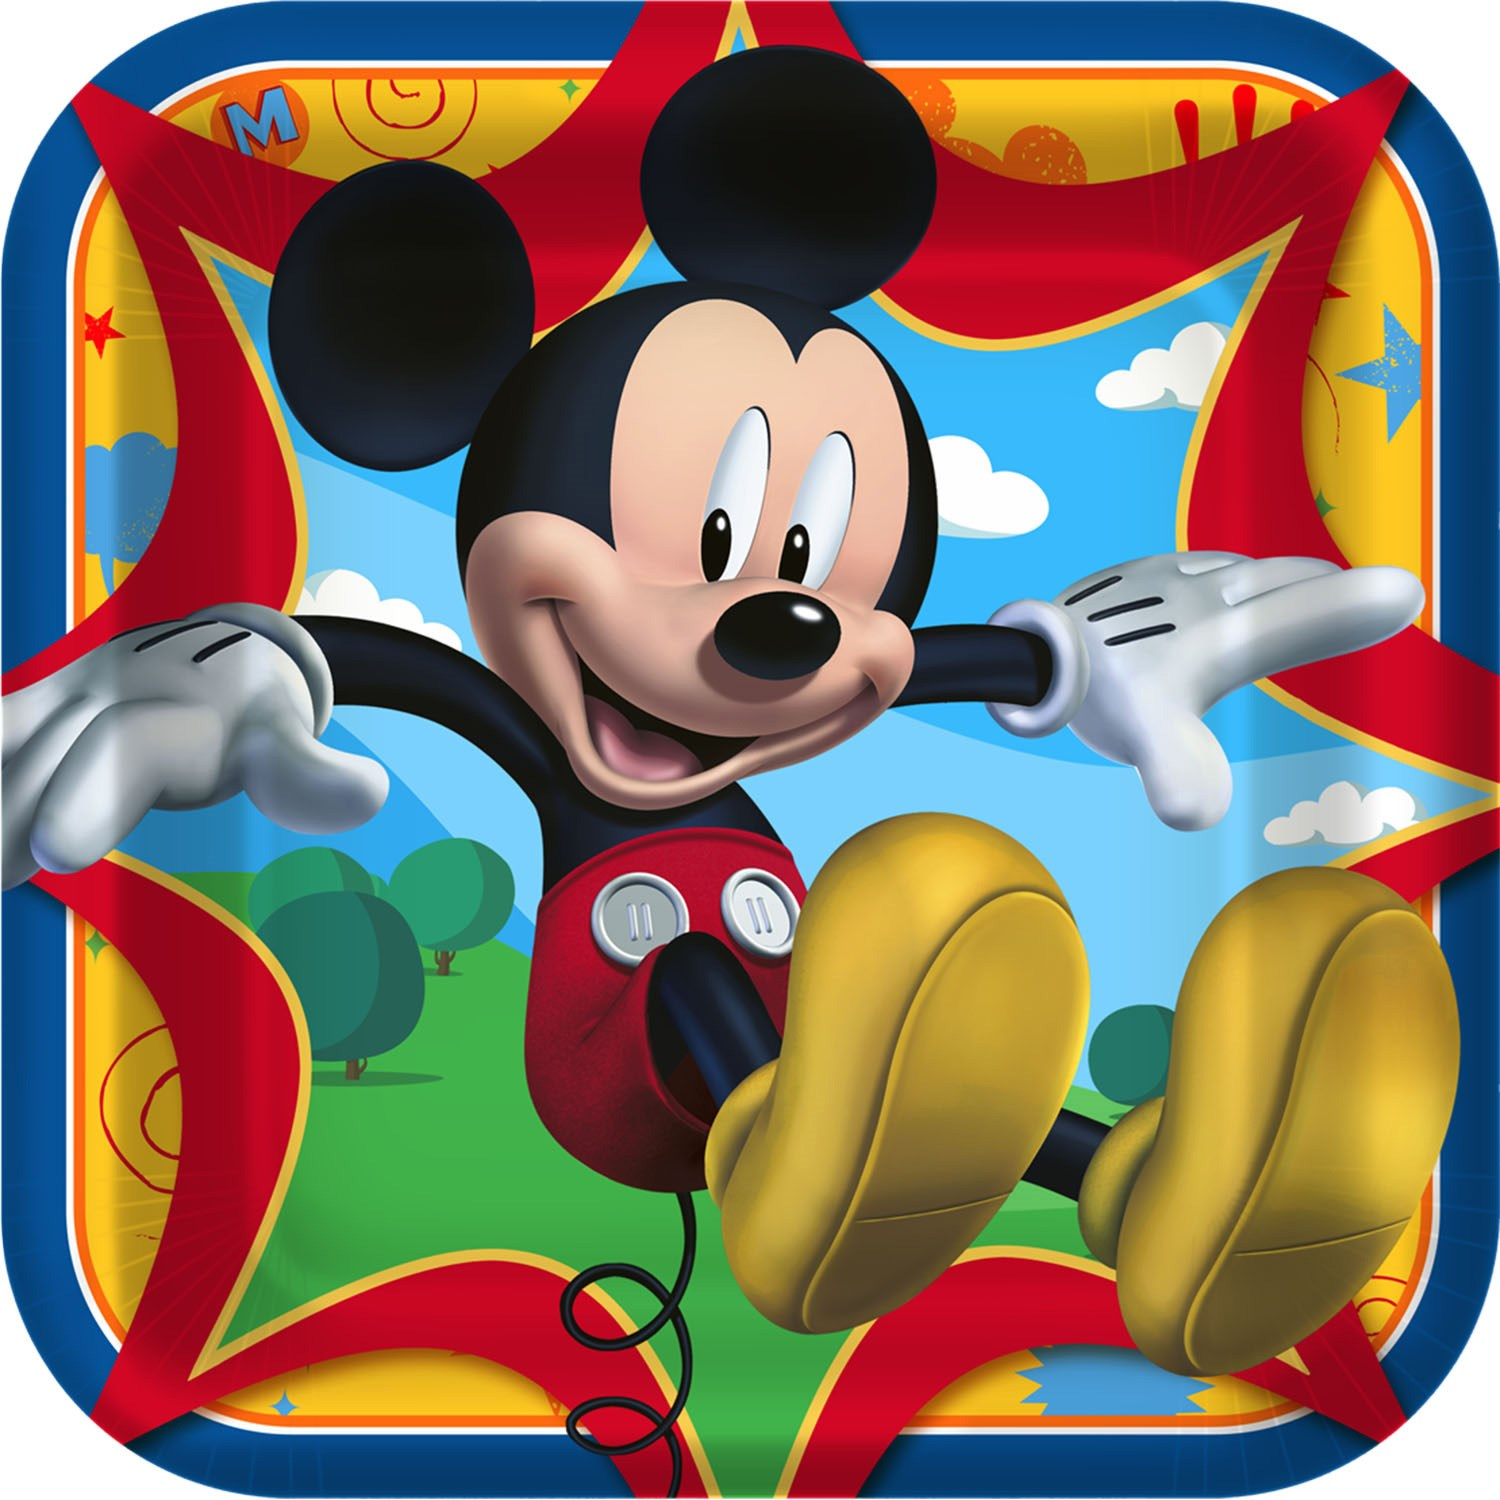 Disney Mickey Fun and Friends Square Dinner Plates 8 count